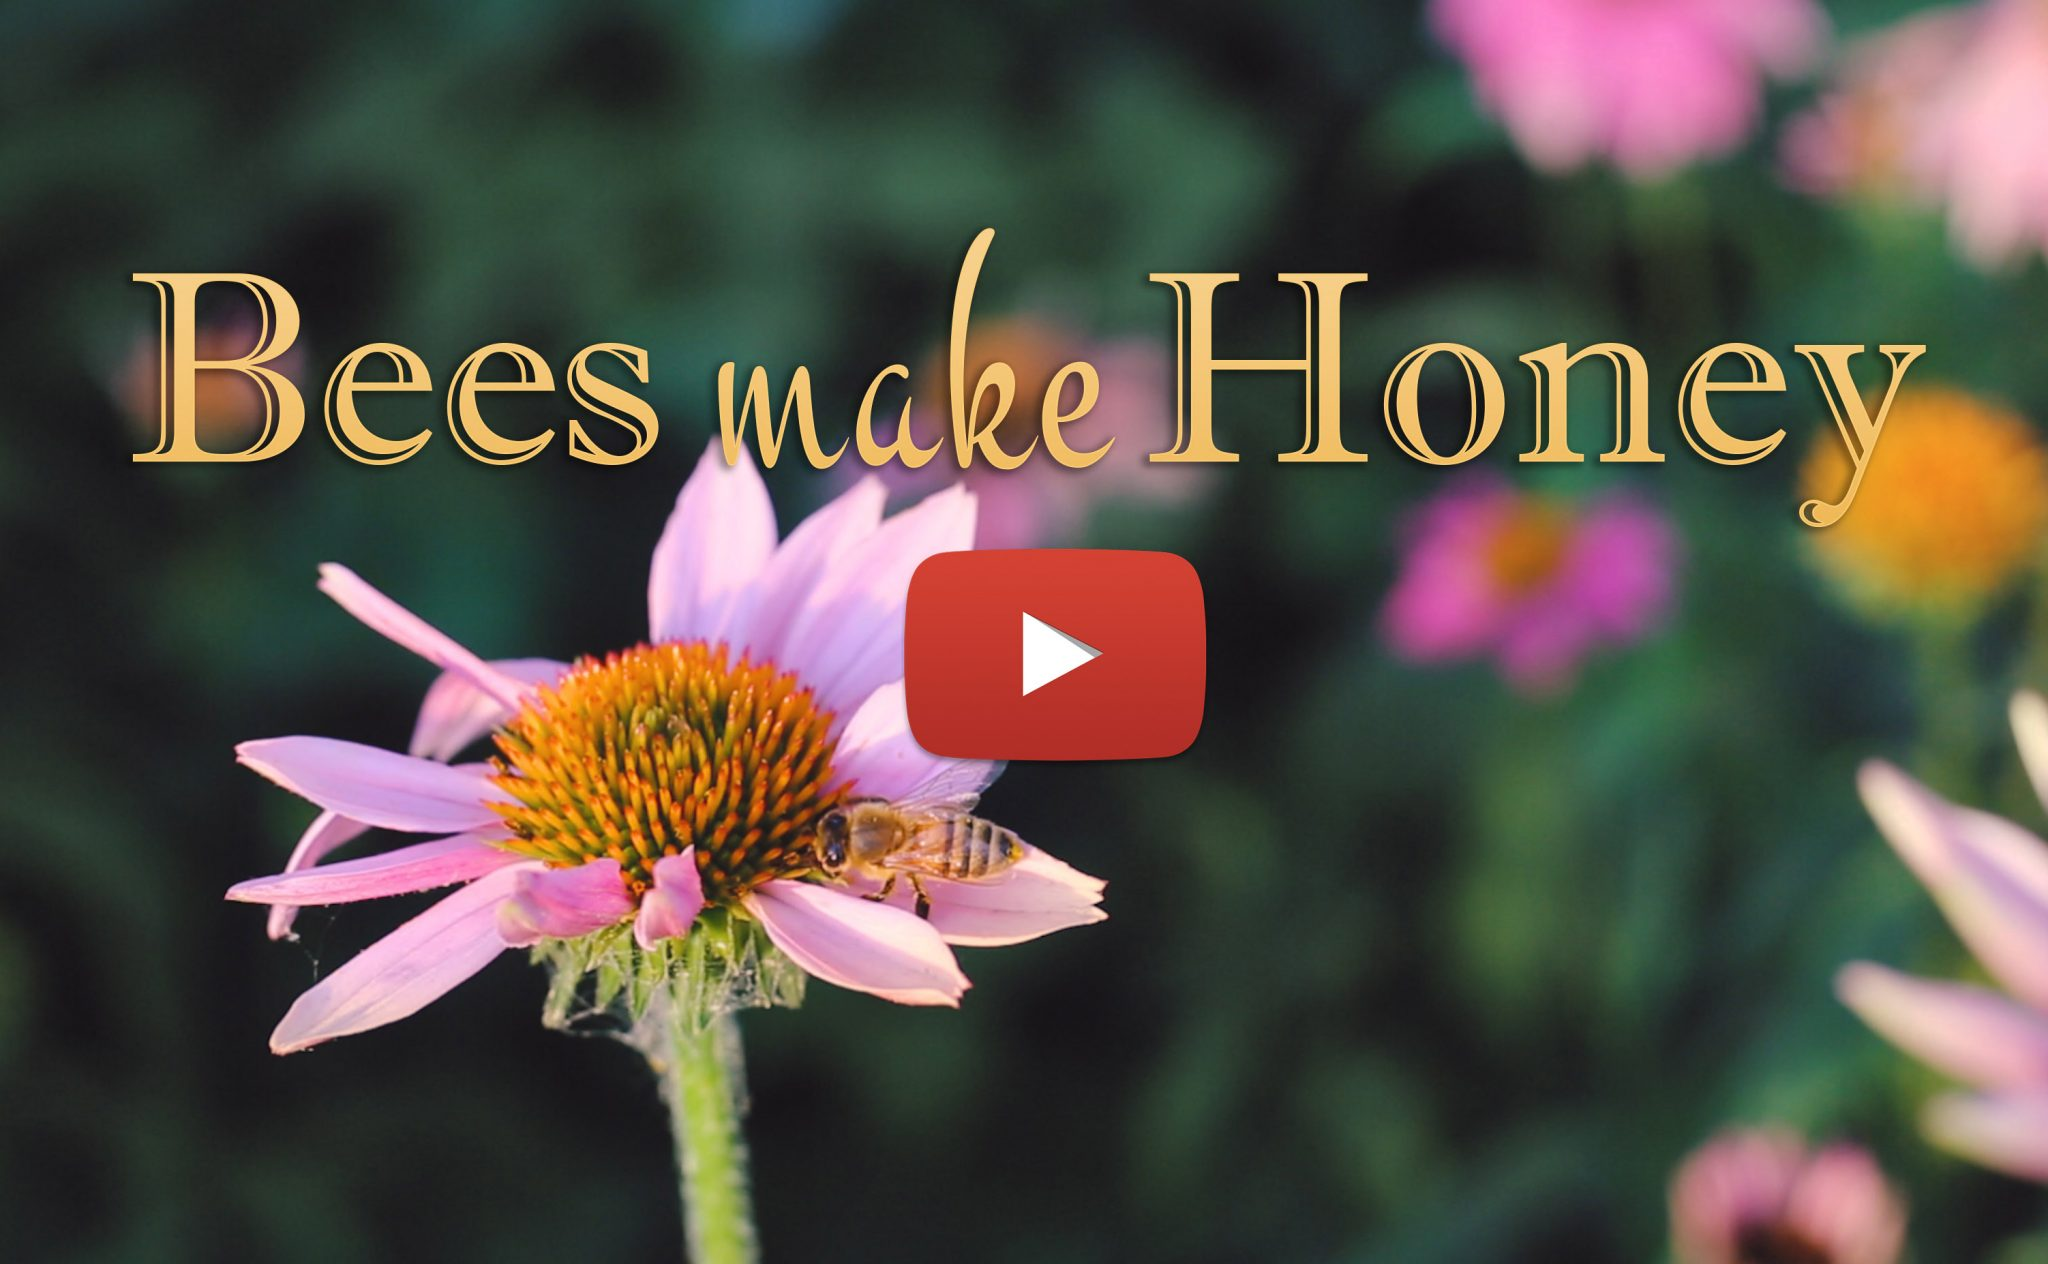 Bees Make HoneyOFFICIAL MUSIC VIDEO